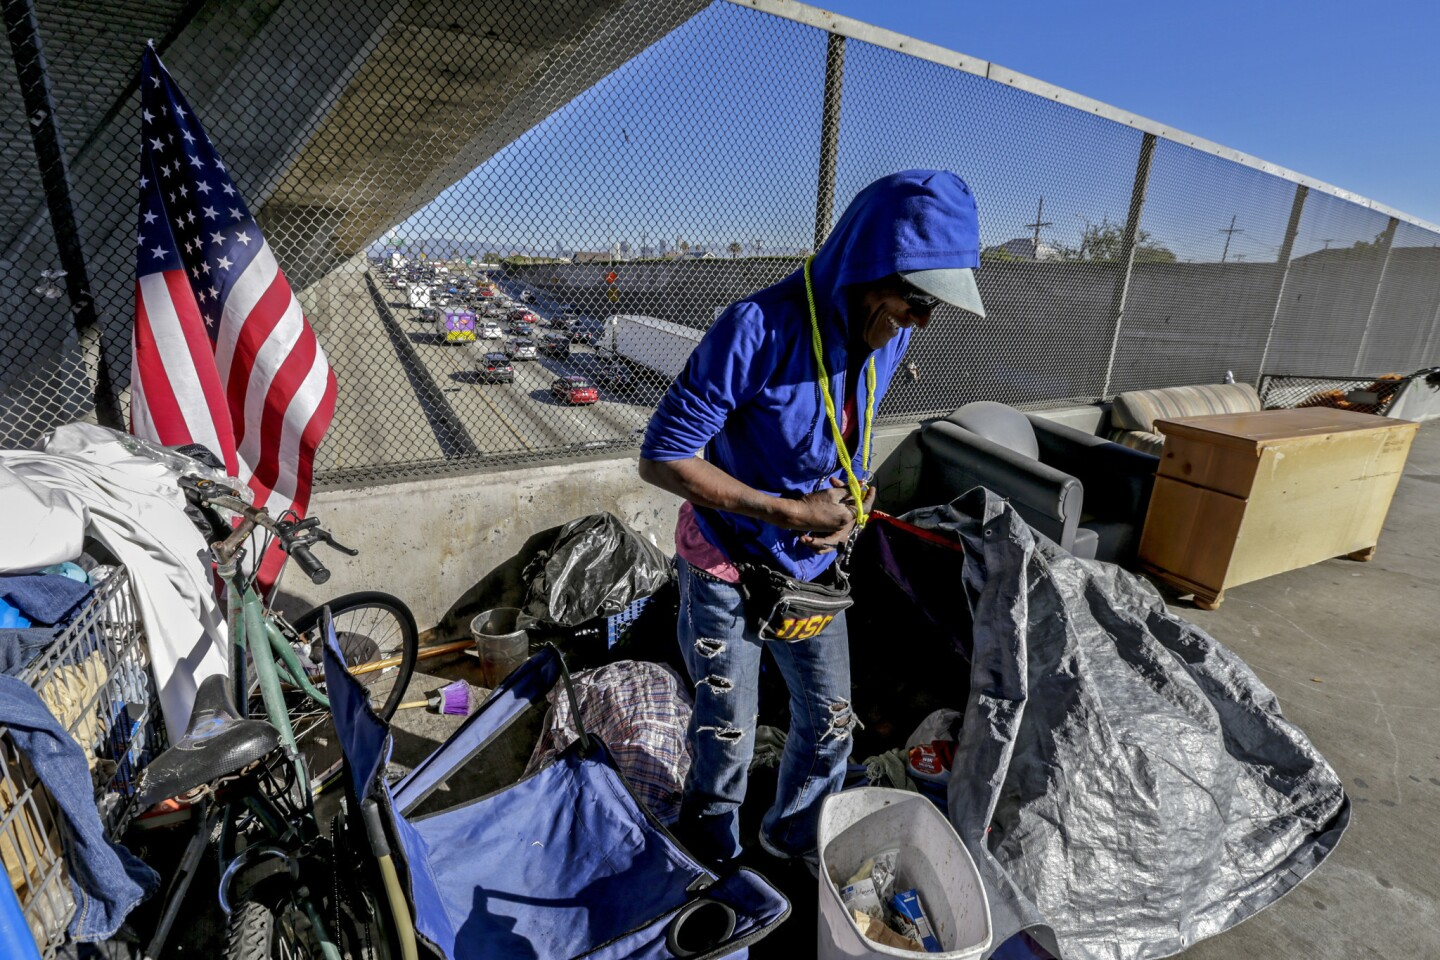 Alice Myles, 60, who is homeless, steps out of her tent pitched over 42nd. Street bridge over 110 Freeway in Los Angles.